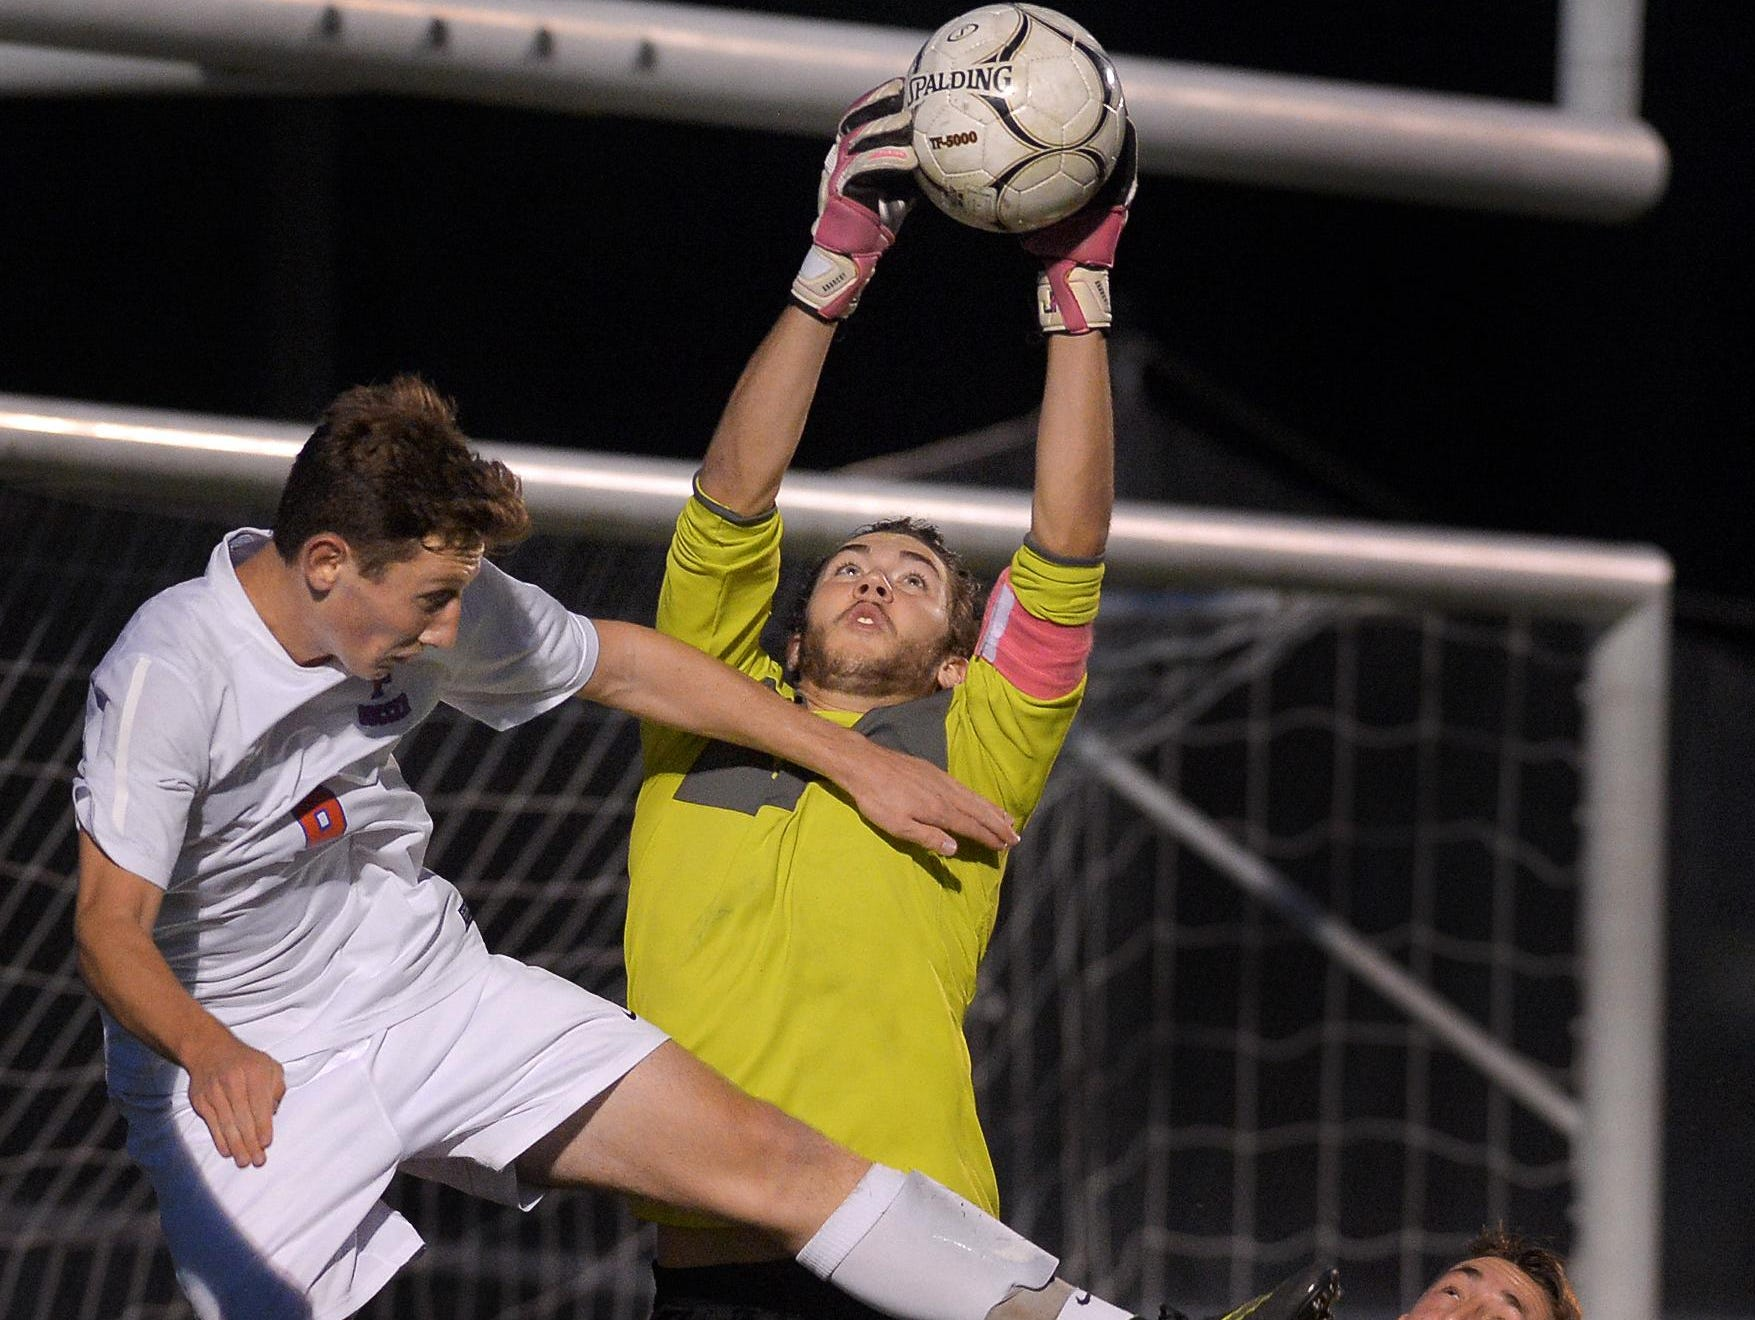 Hilton goalie Jesse DePrez, center, reaches for the ball between Fairport's Nick Guida, left, and Pete Critchlow during a regular season game at Fairport High School on Wednesday. The teams played to a 3-3 draw.